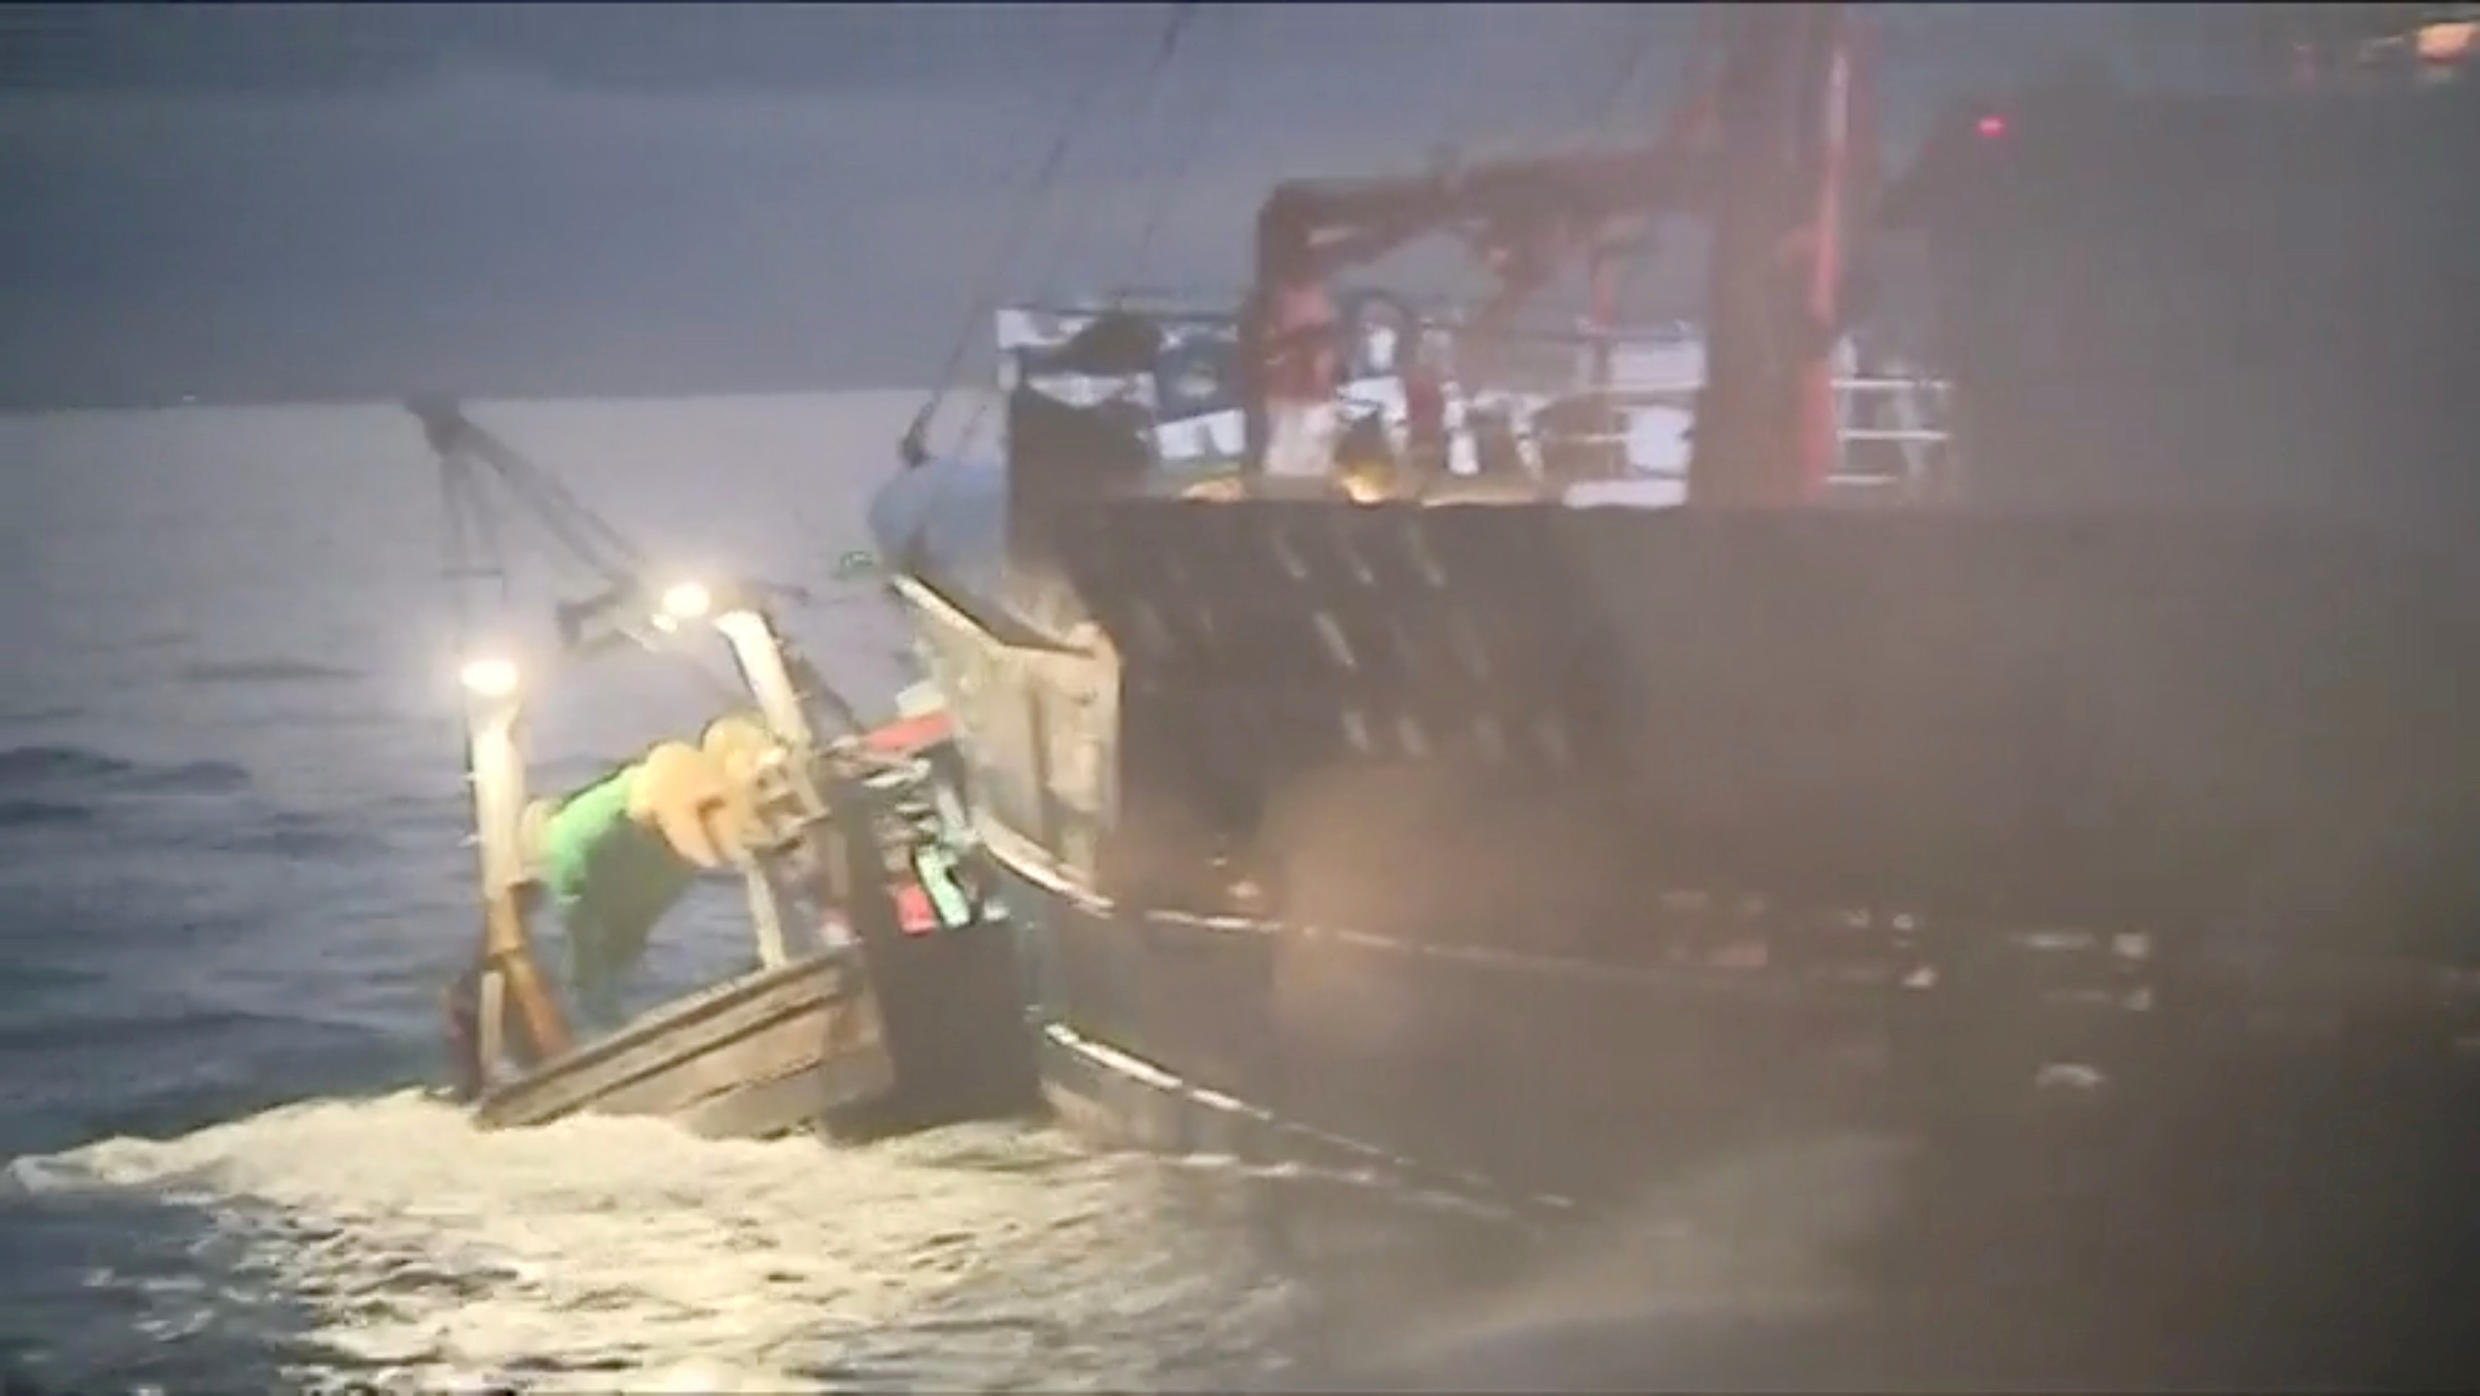 A French boat rams a British one on Tuesday